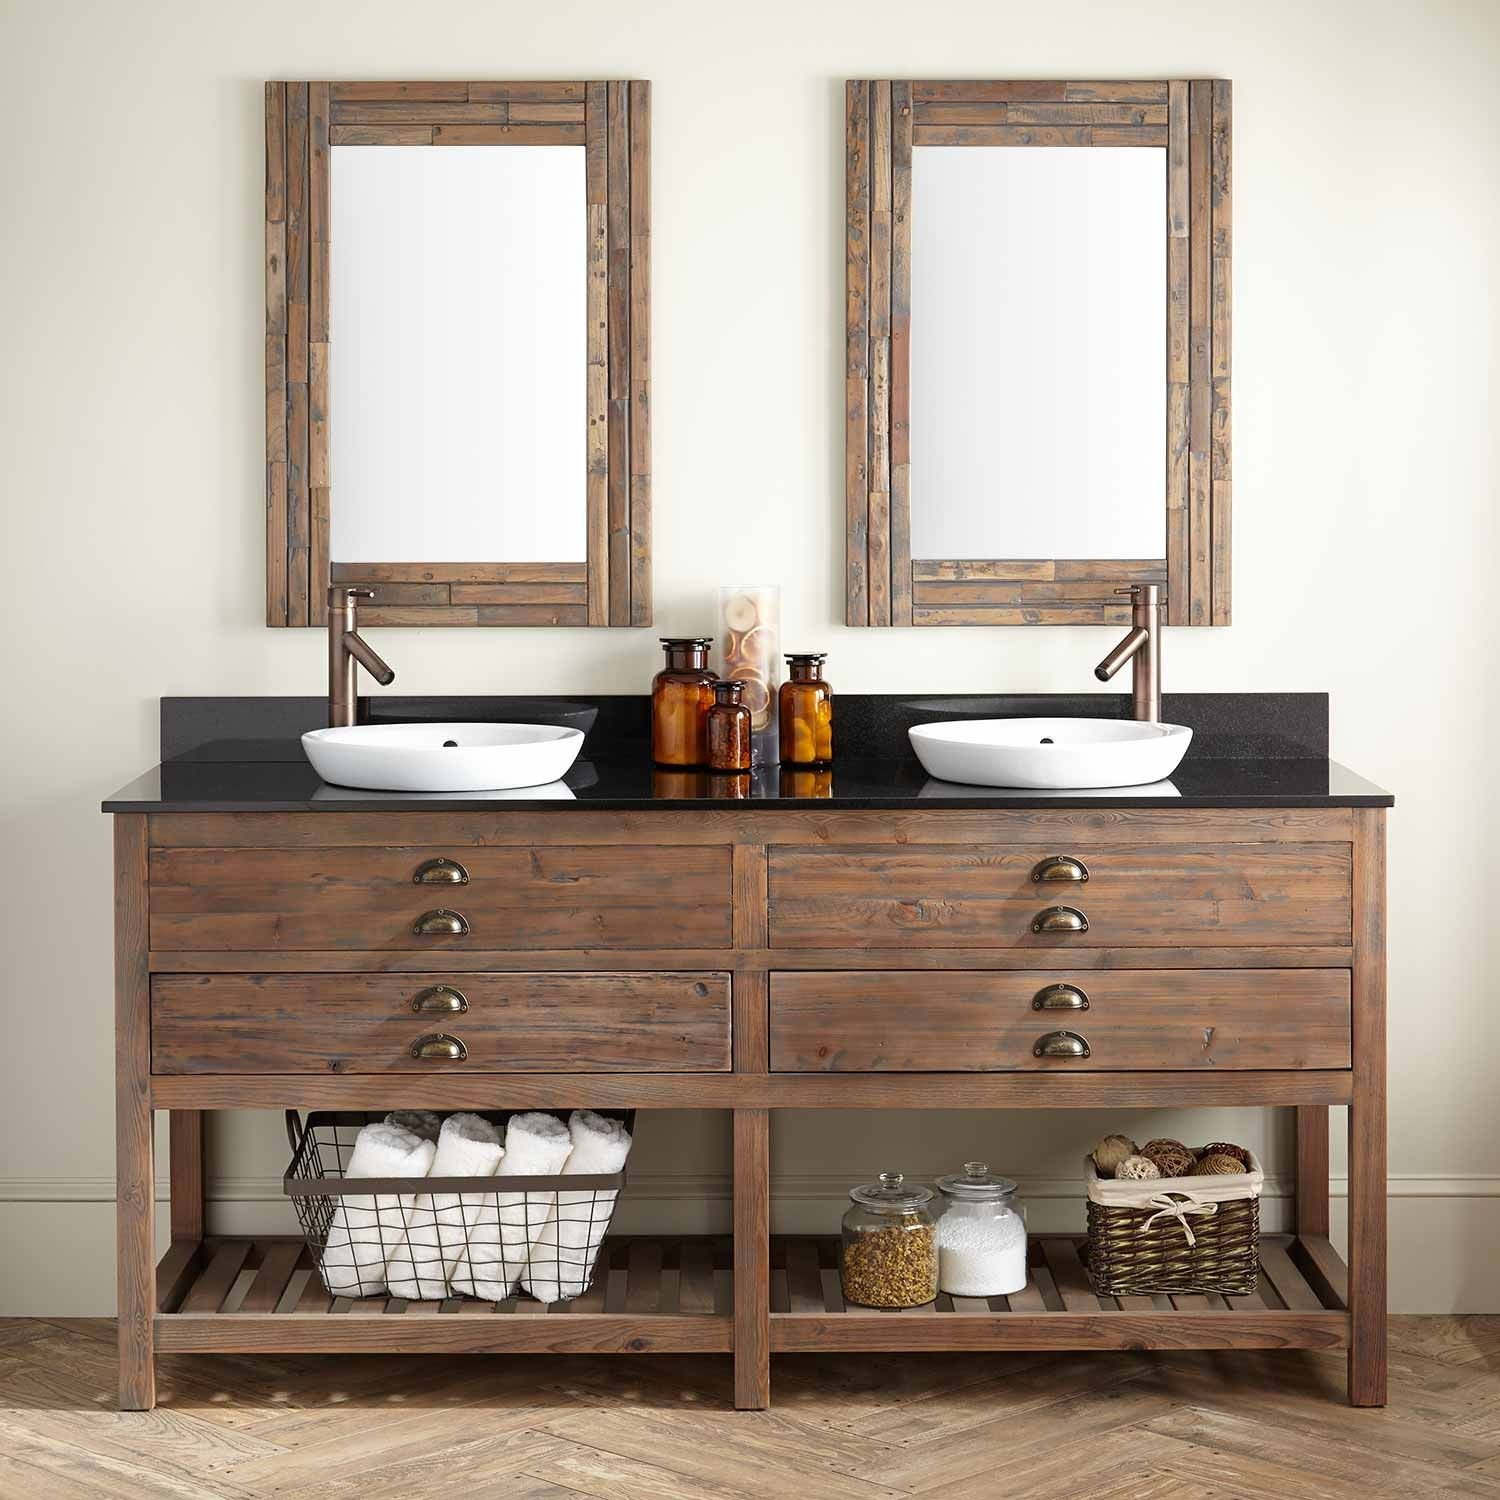 72 Benoist Reclaimed Wood Double Vanity For Semi Recessed Sink Gray Wash Pine